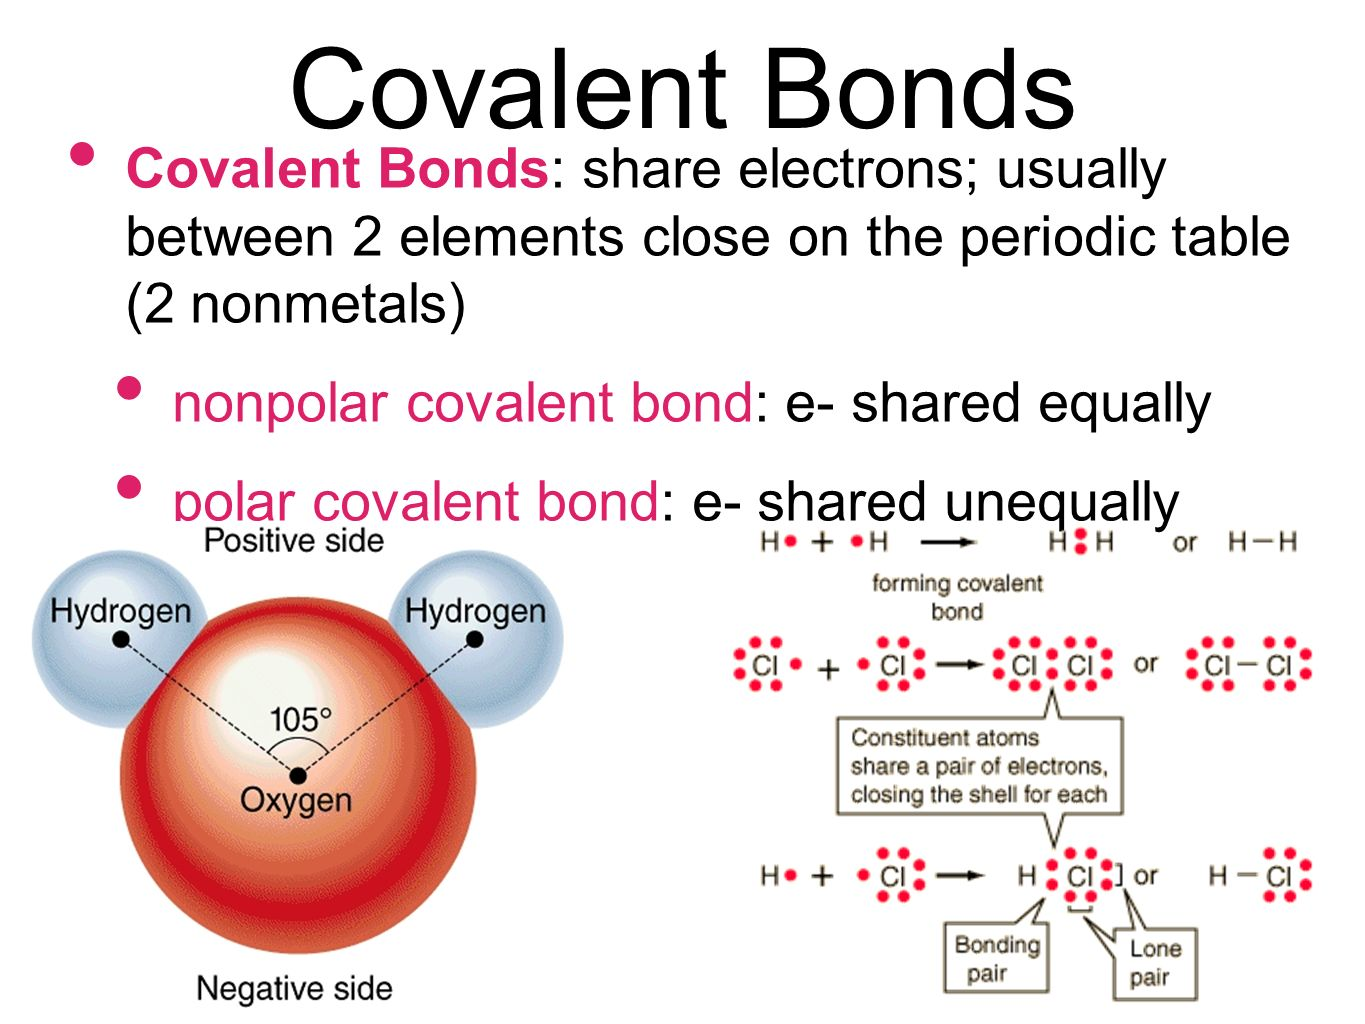 how to understand covalent bonds